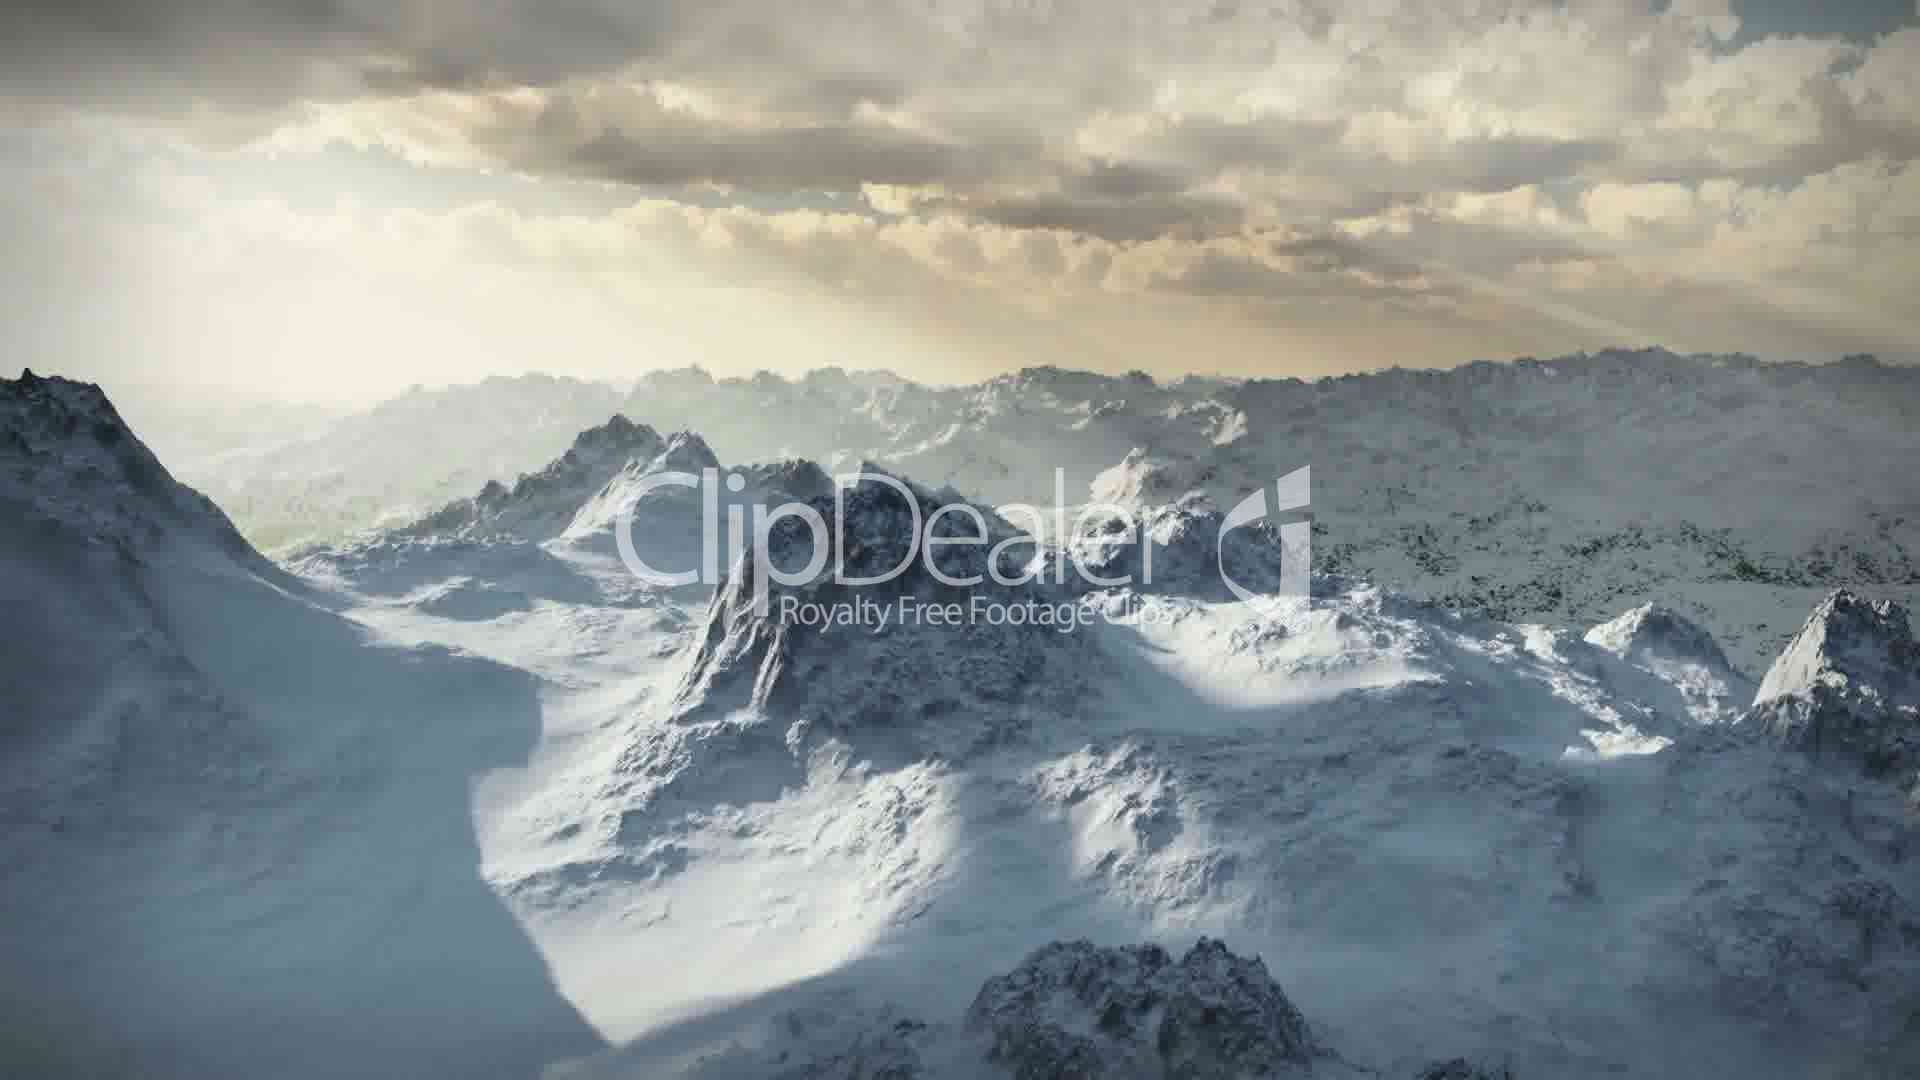 Hd Christbaumschmuck Royalty Free Video And Stock Footage 1058 Snow Mountains Wilderness Glaciers Sunset Hd Video